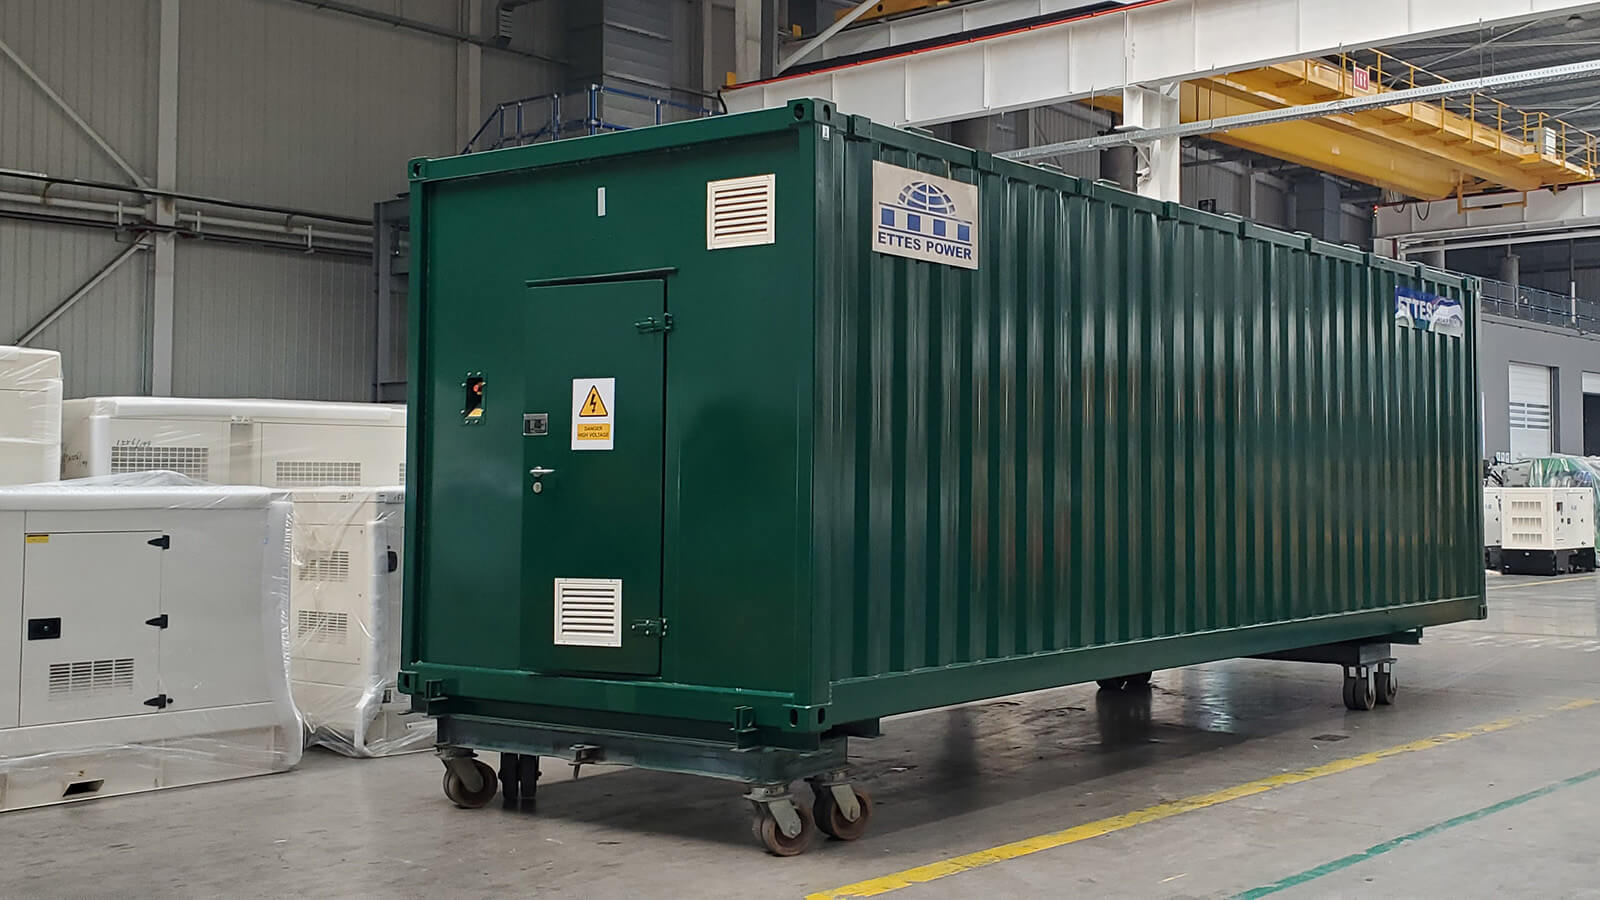 MAN Containerized Digester Biogas Generators are Transported to Seaport ETTES POWER